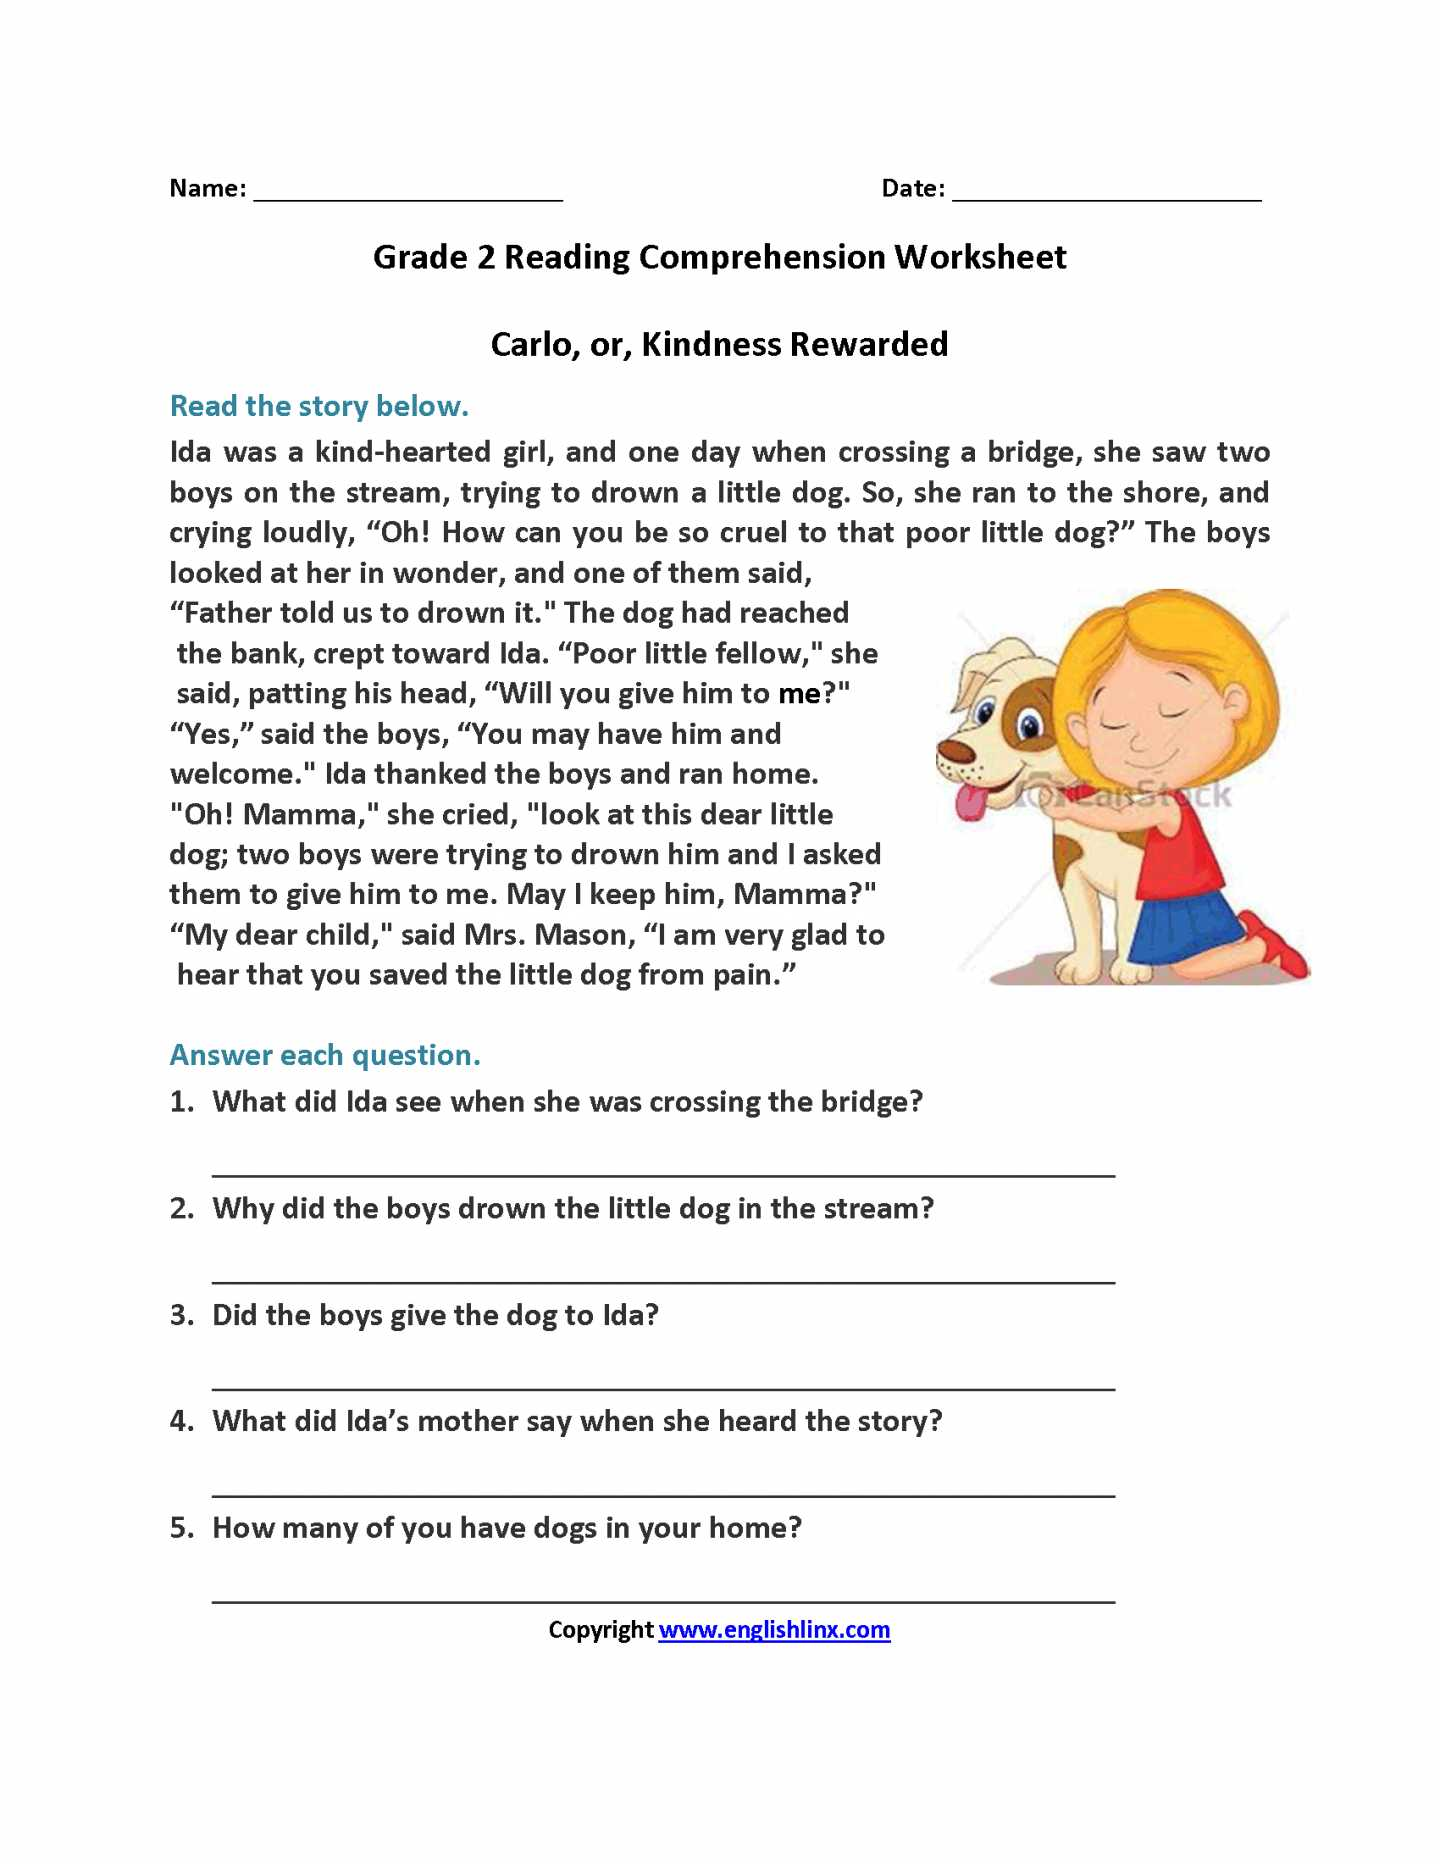 Reading Skills and Strategies Worksheet Animal Farm Also 2nd Grade Reading Prehension Worksheets Multiple Choice